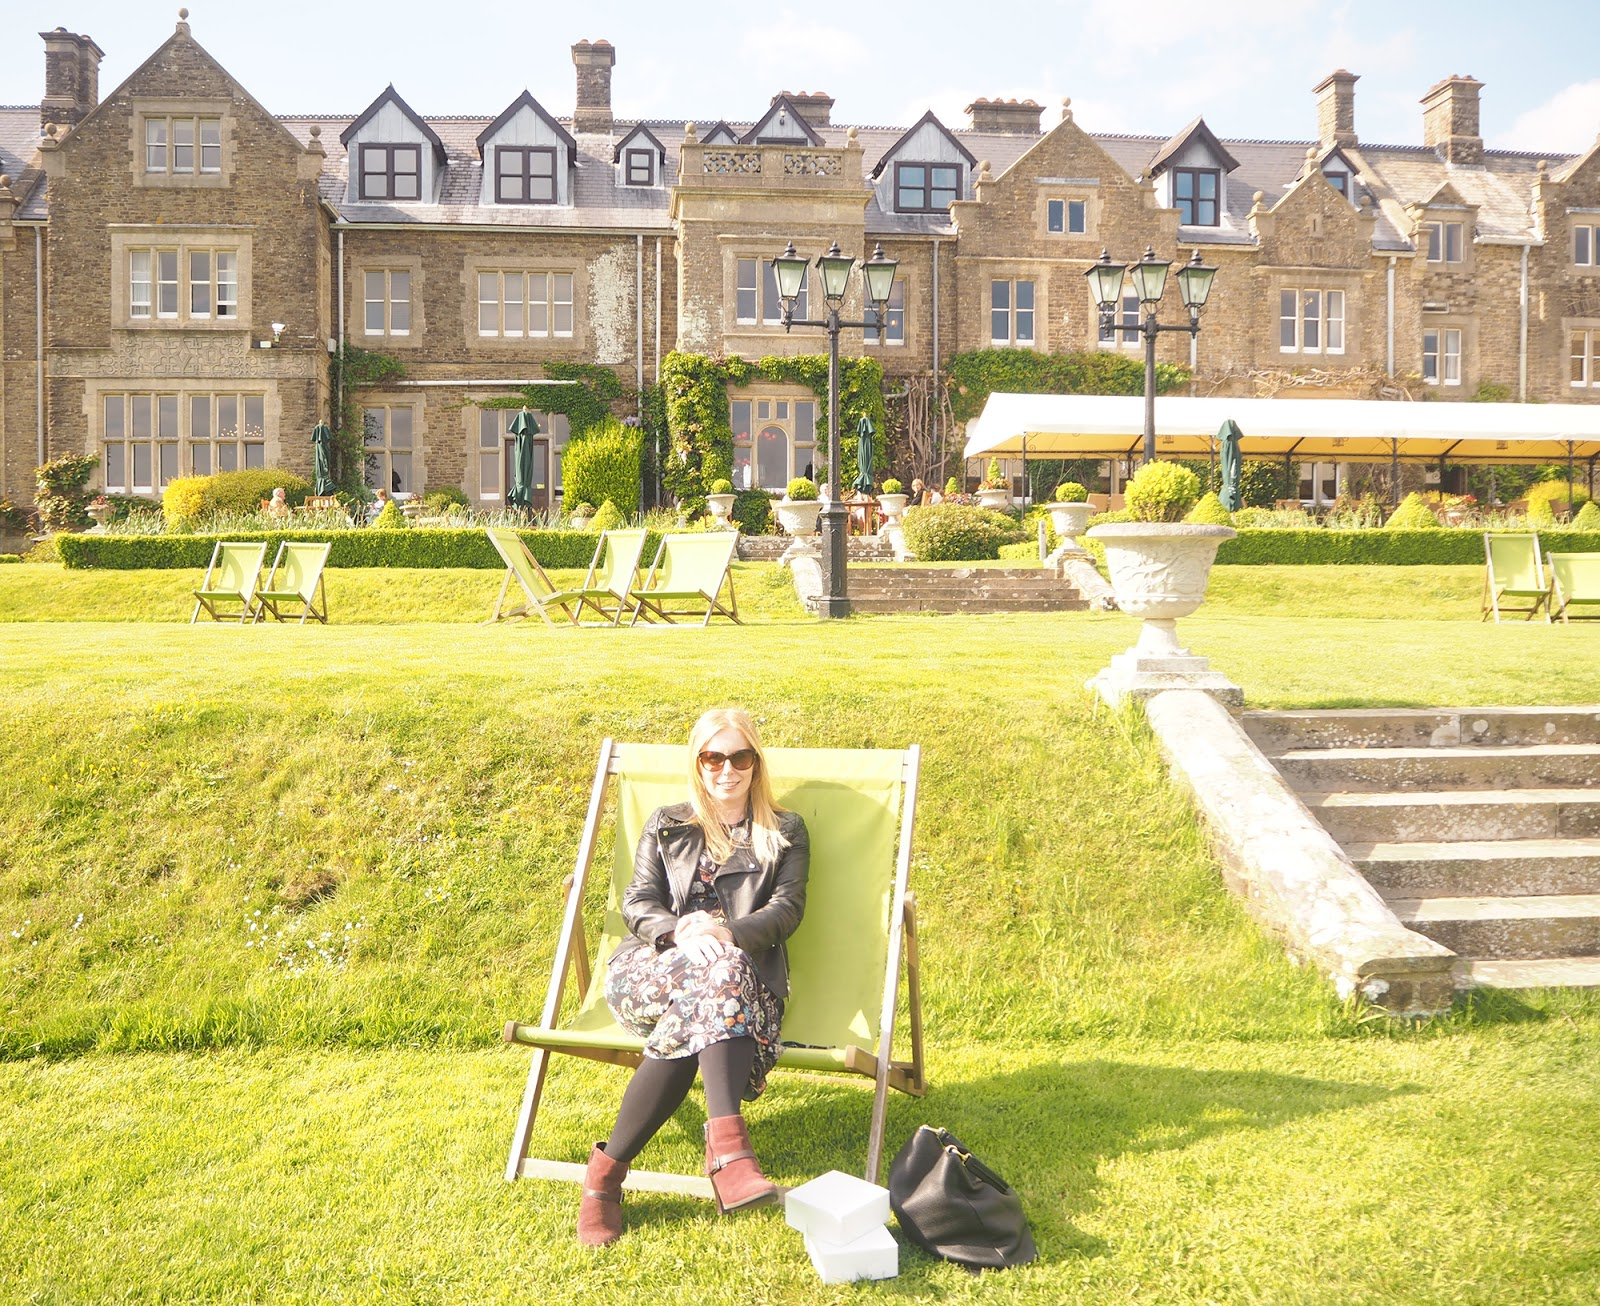 Afternoon tea review at South Lodge in Horsham - deckchairs